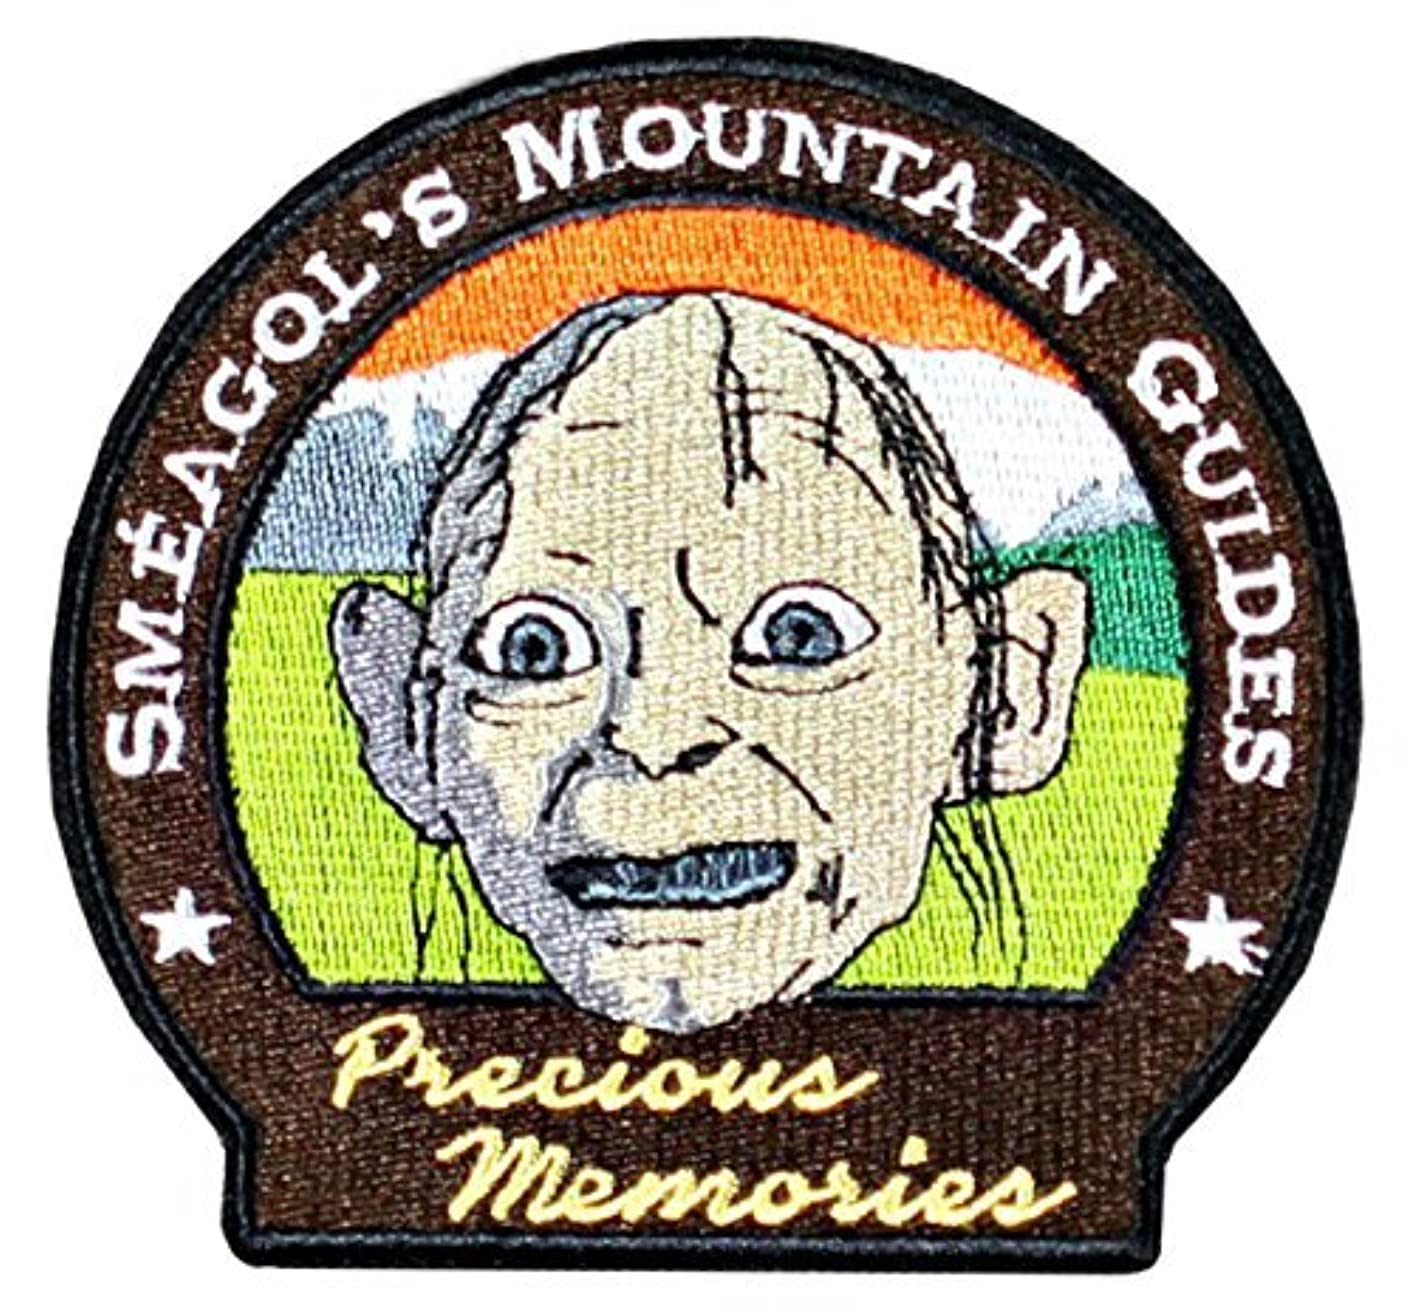 Violent Little Machine Shop Smeagol's Mt. Guides Morale Patch